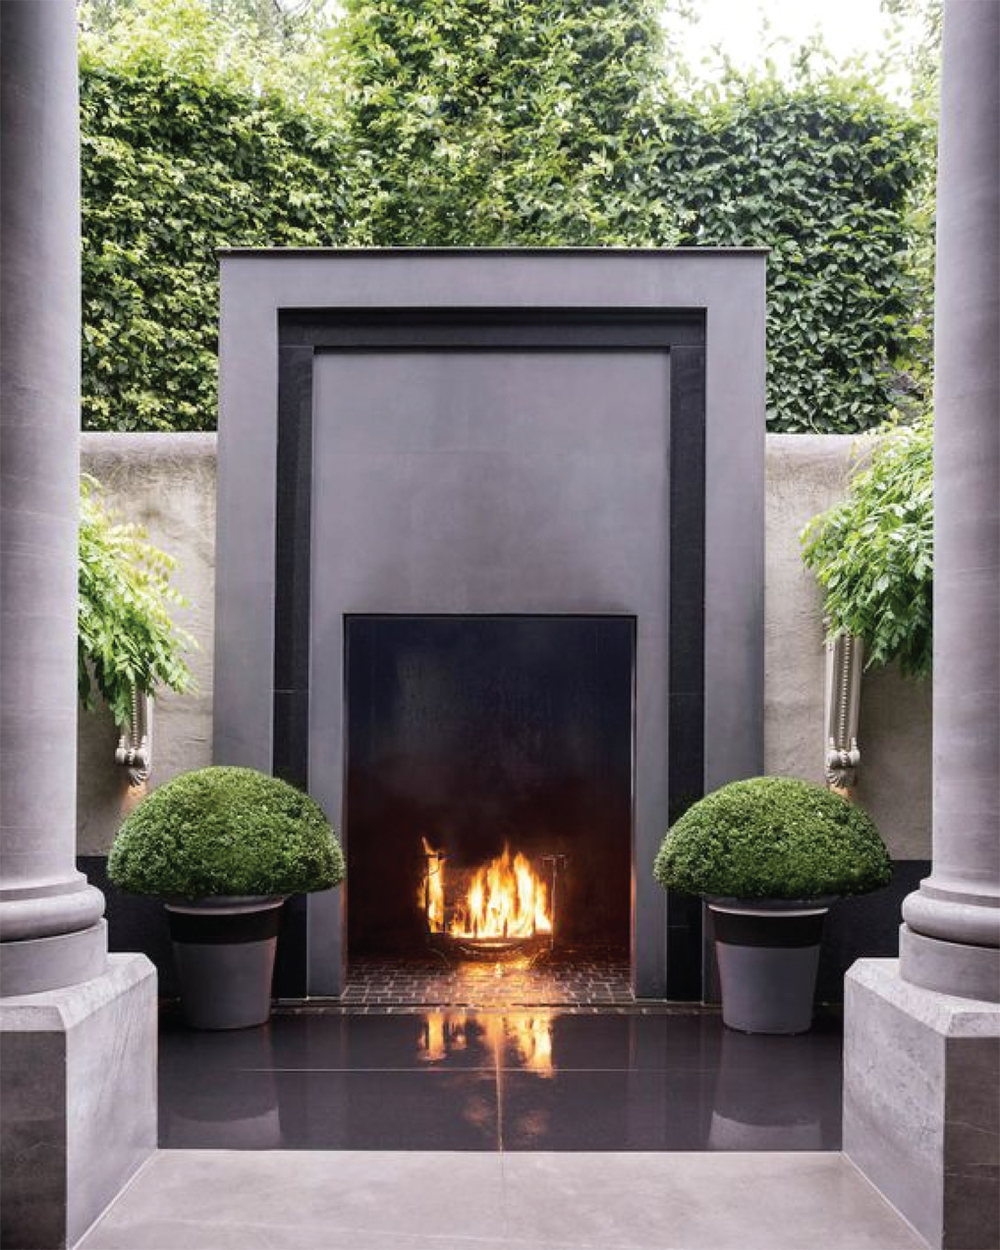 Quick and Simple: End Of Summer Outdoor Decor Ideas ... on Simple Outdoor Fireplace Ideas id=60881